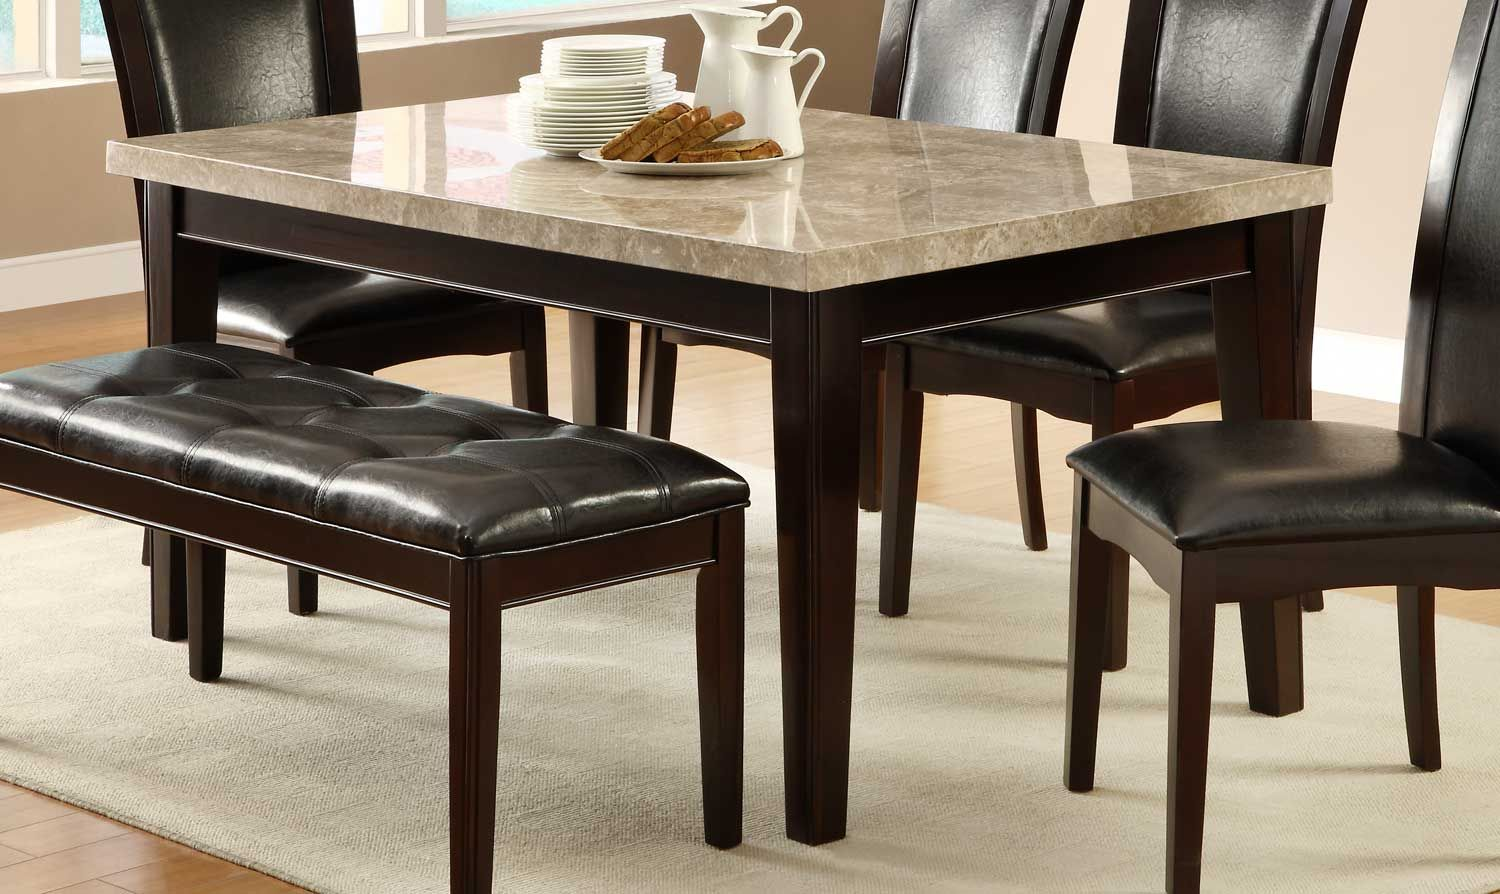 Homelegance Hahn Dining Table  Ivory Marble Topdark Brown Simple Dining Room Tables With Marble Top Inspiration Design